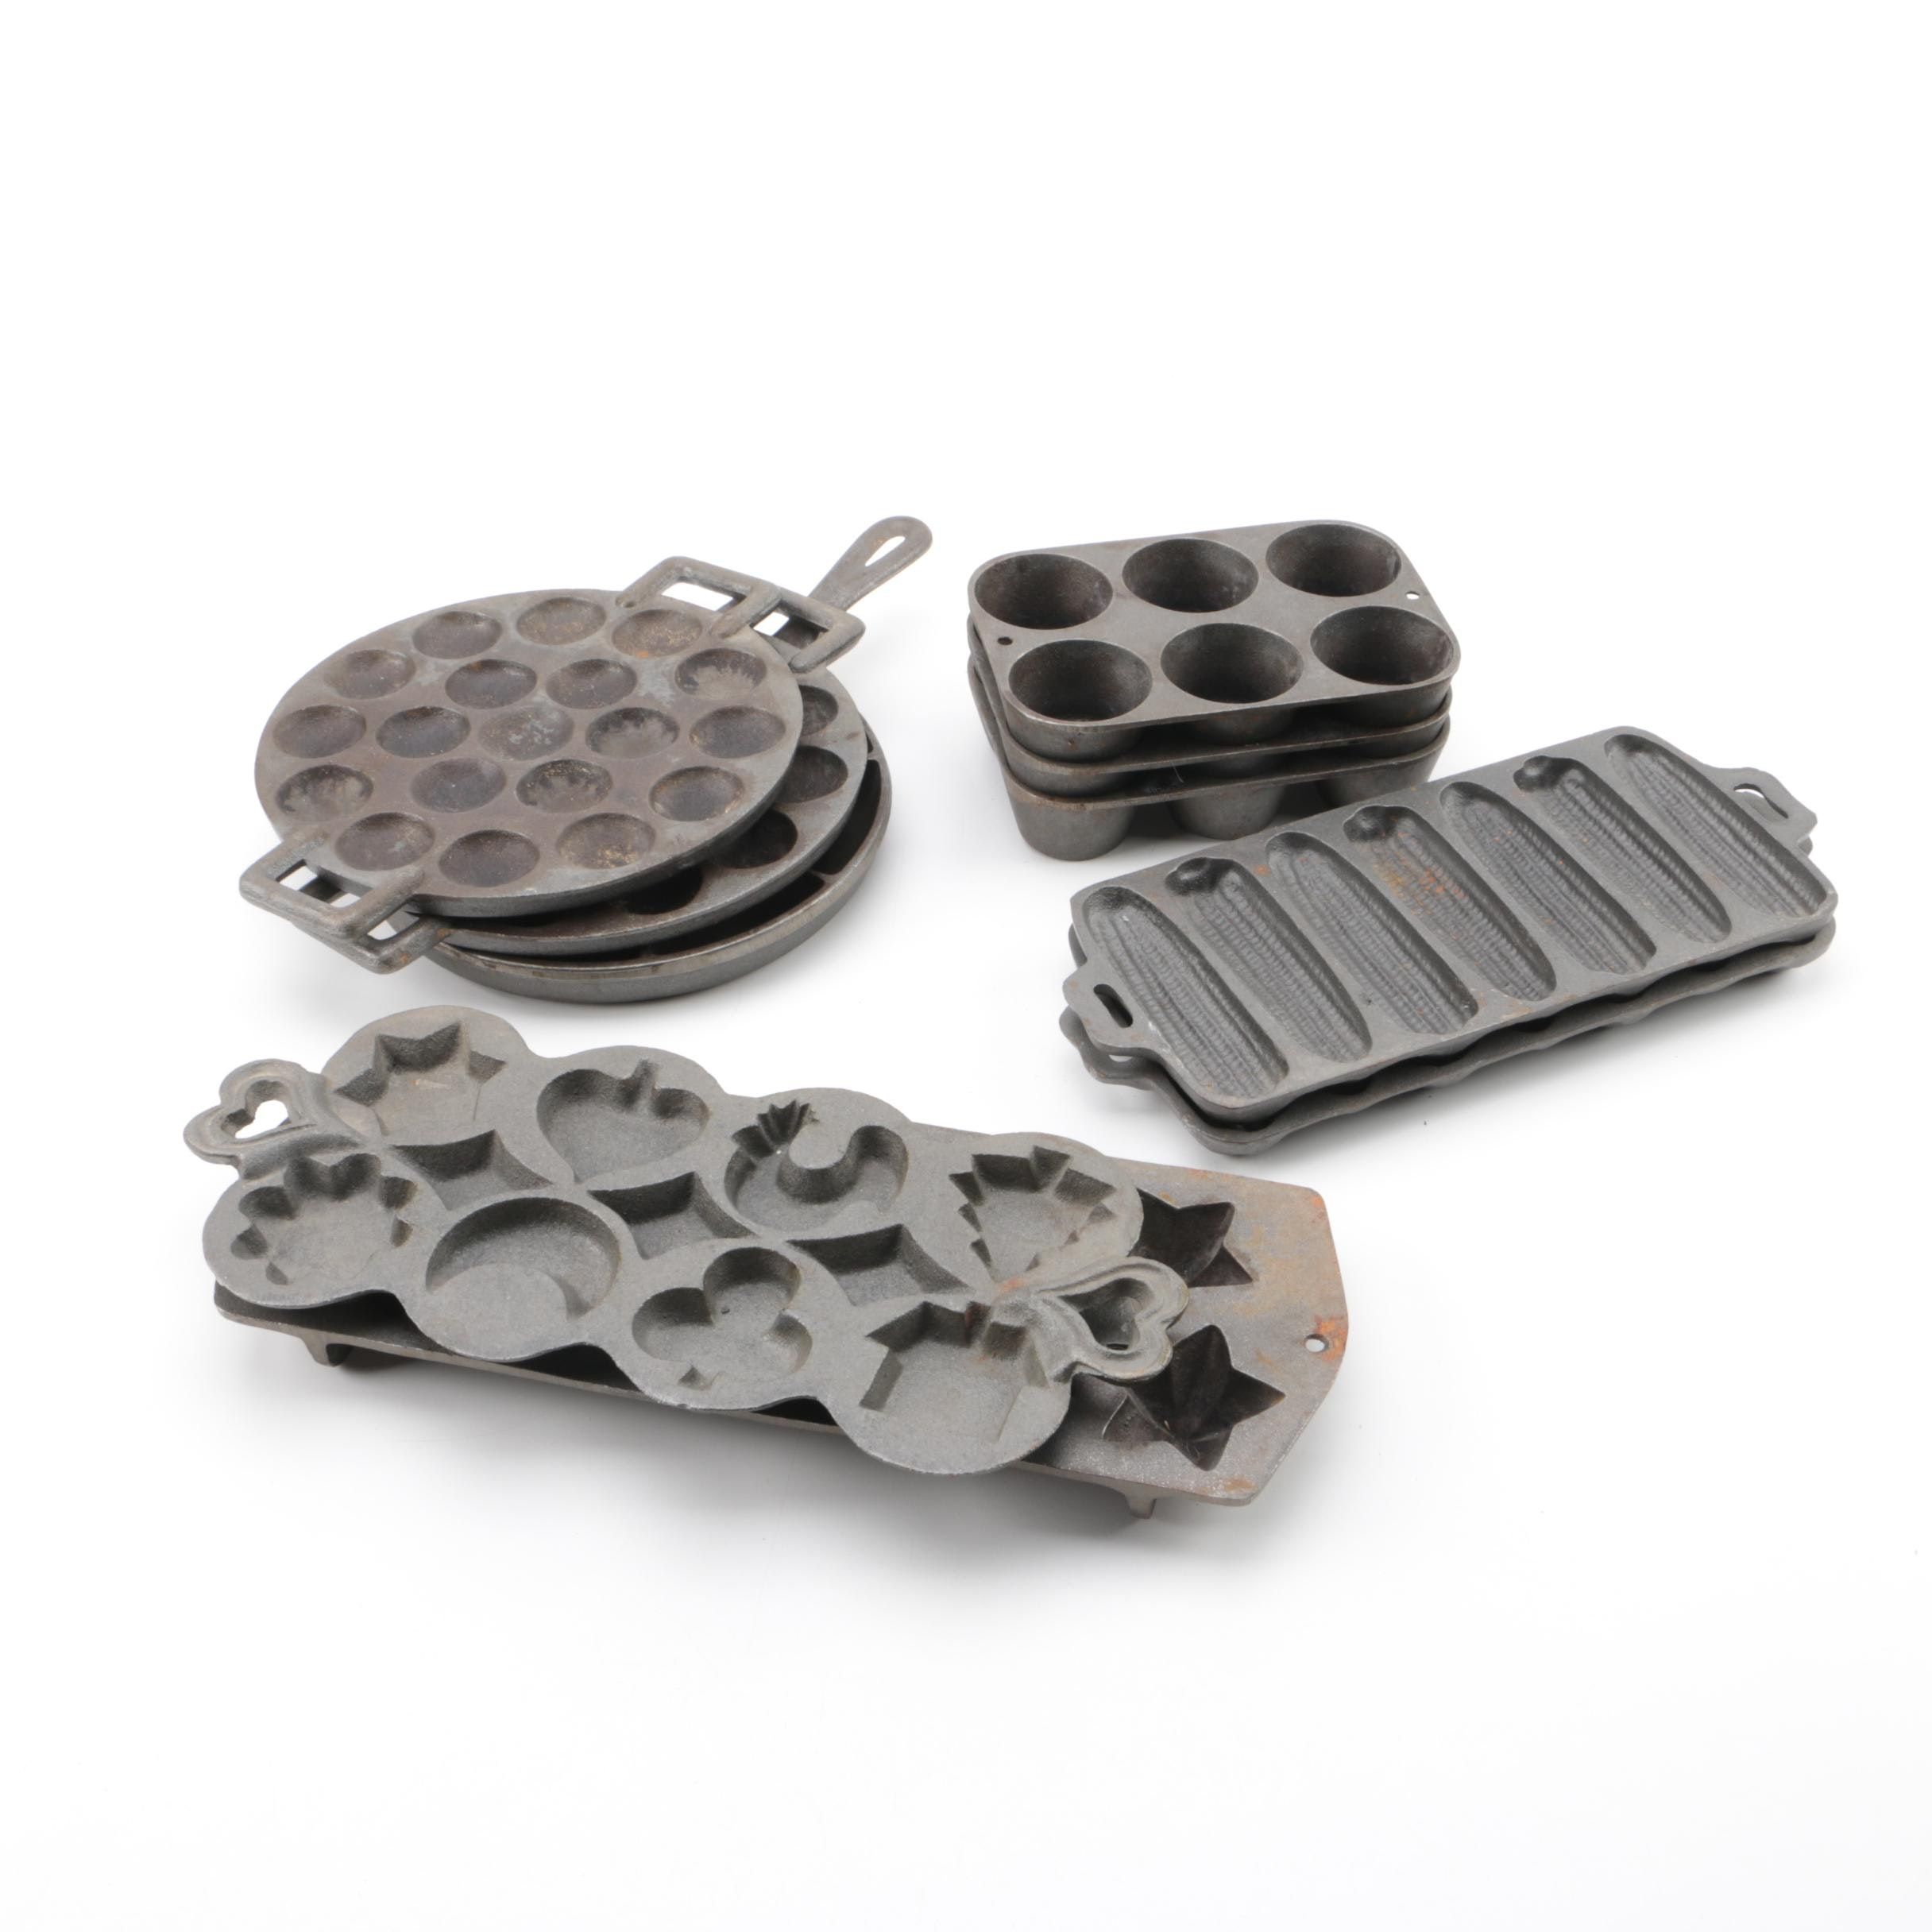 Cast Iron Bakeware Including Lodge